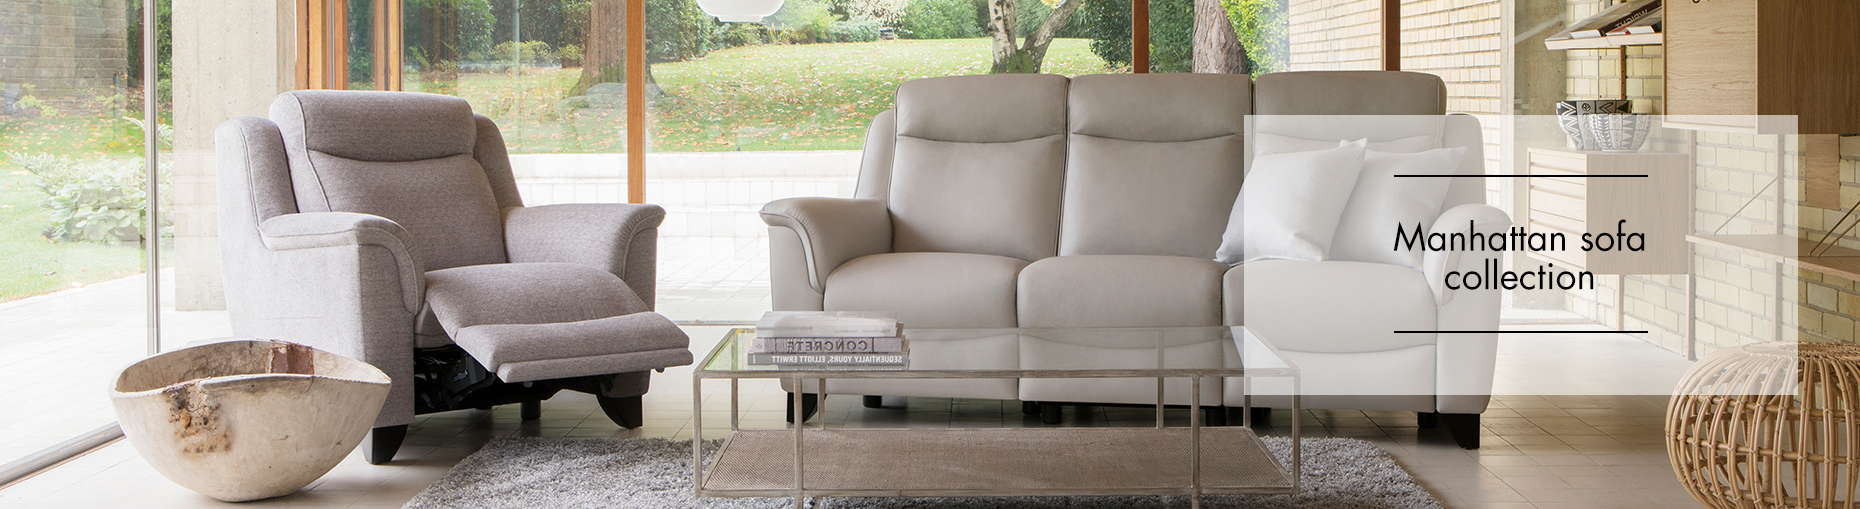 Manhattan Sofa collection by Parker Knoll at Forrest Furnishing